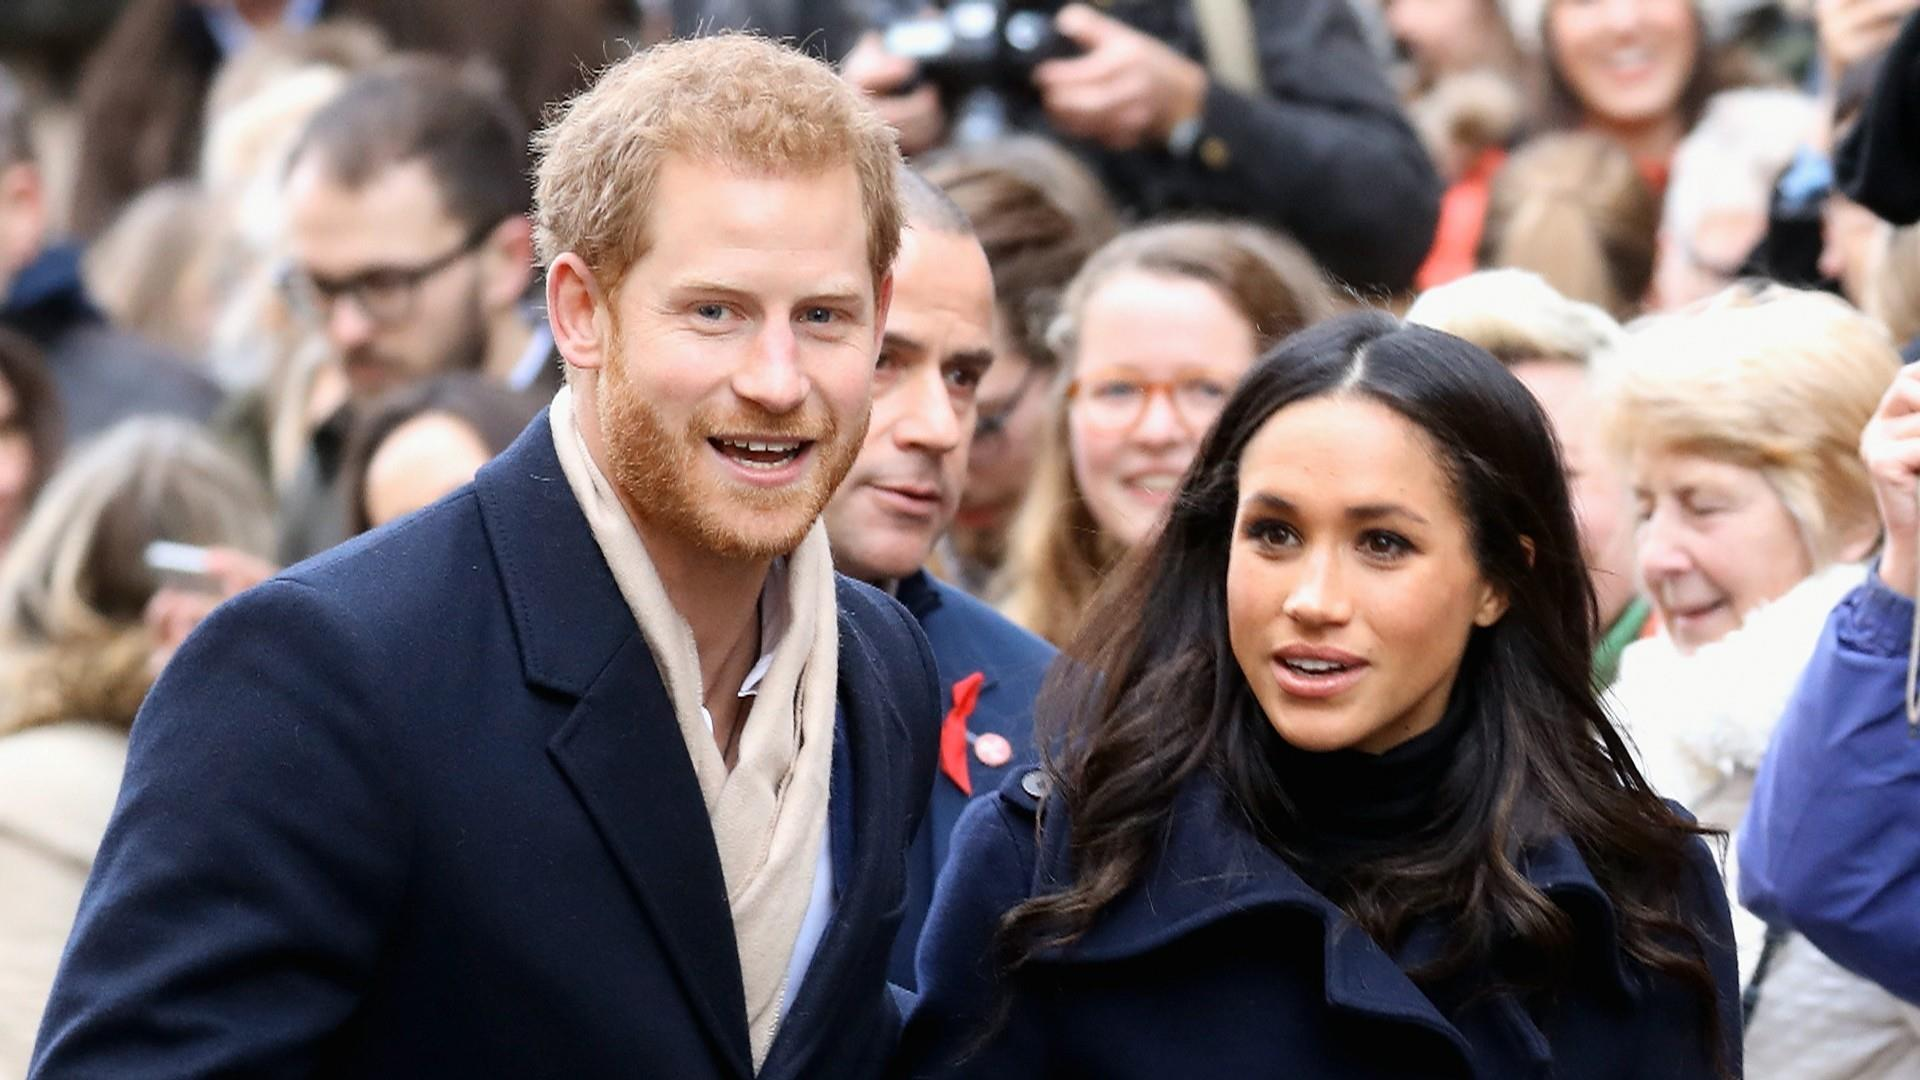 when is the royal wedding prince harry and meghan markle to marry on may 19 prince harry and meghan markle s wedding date is revealed